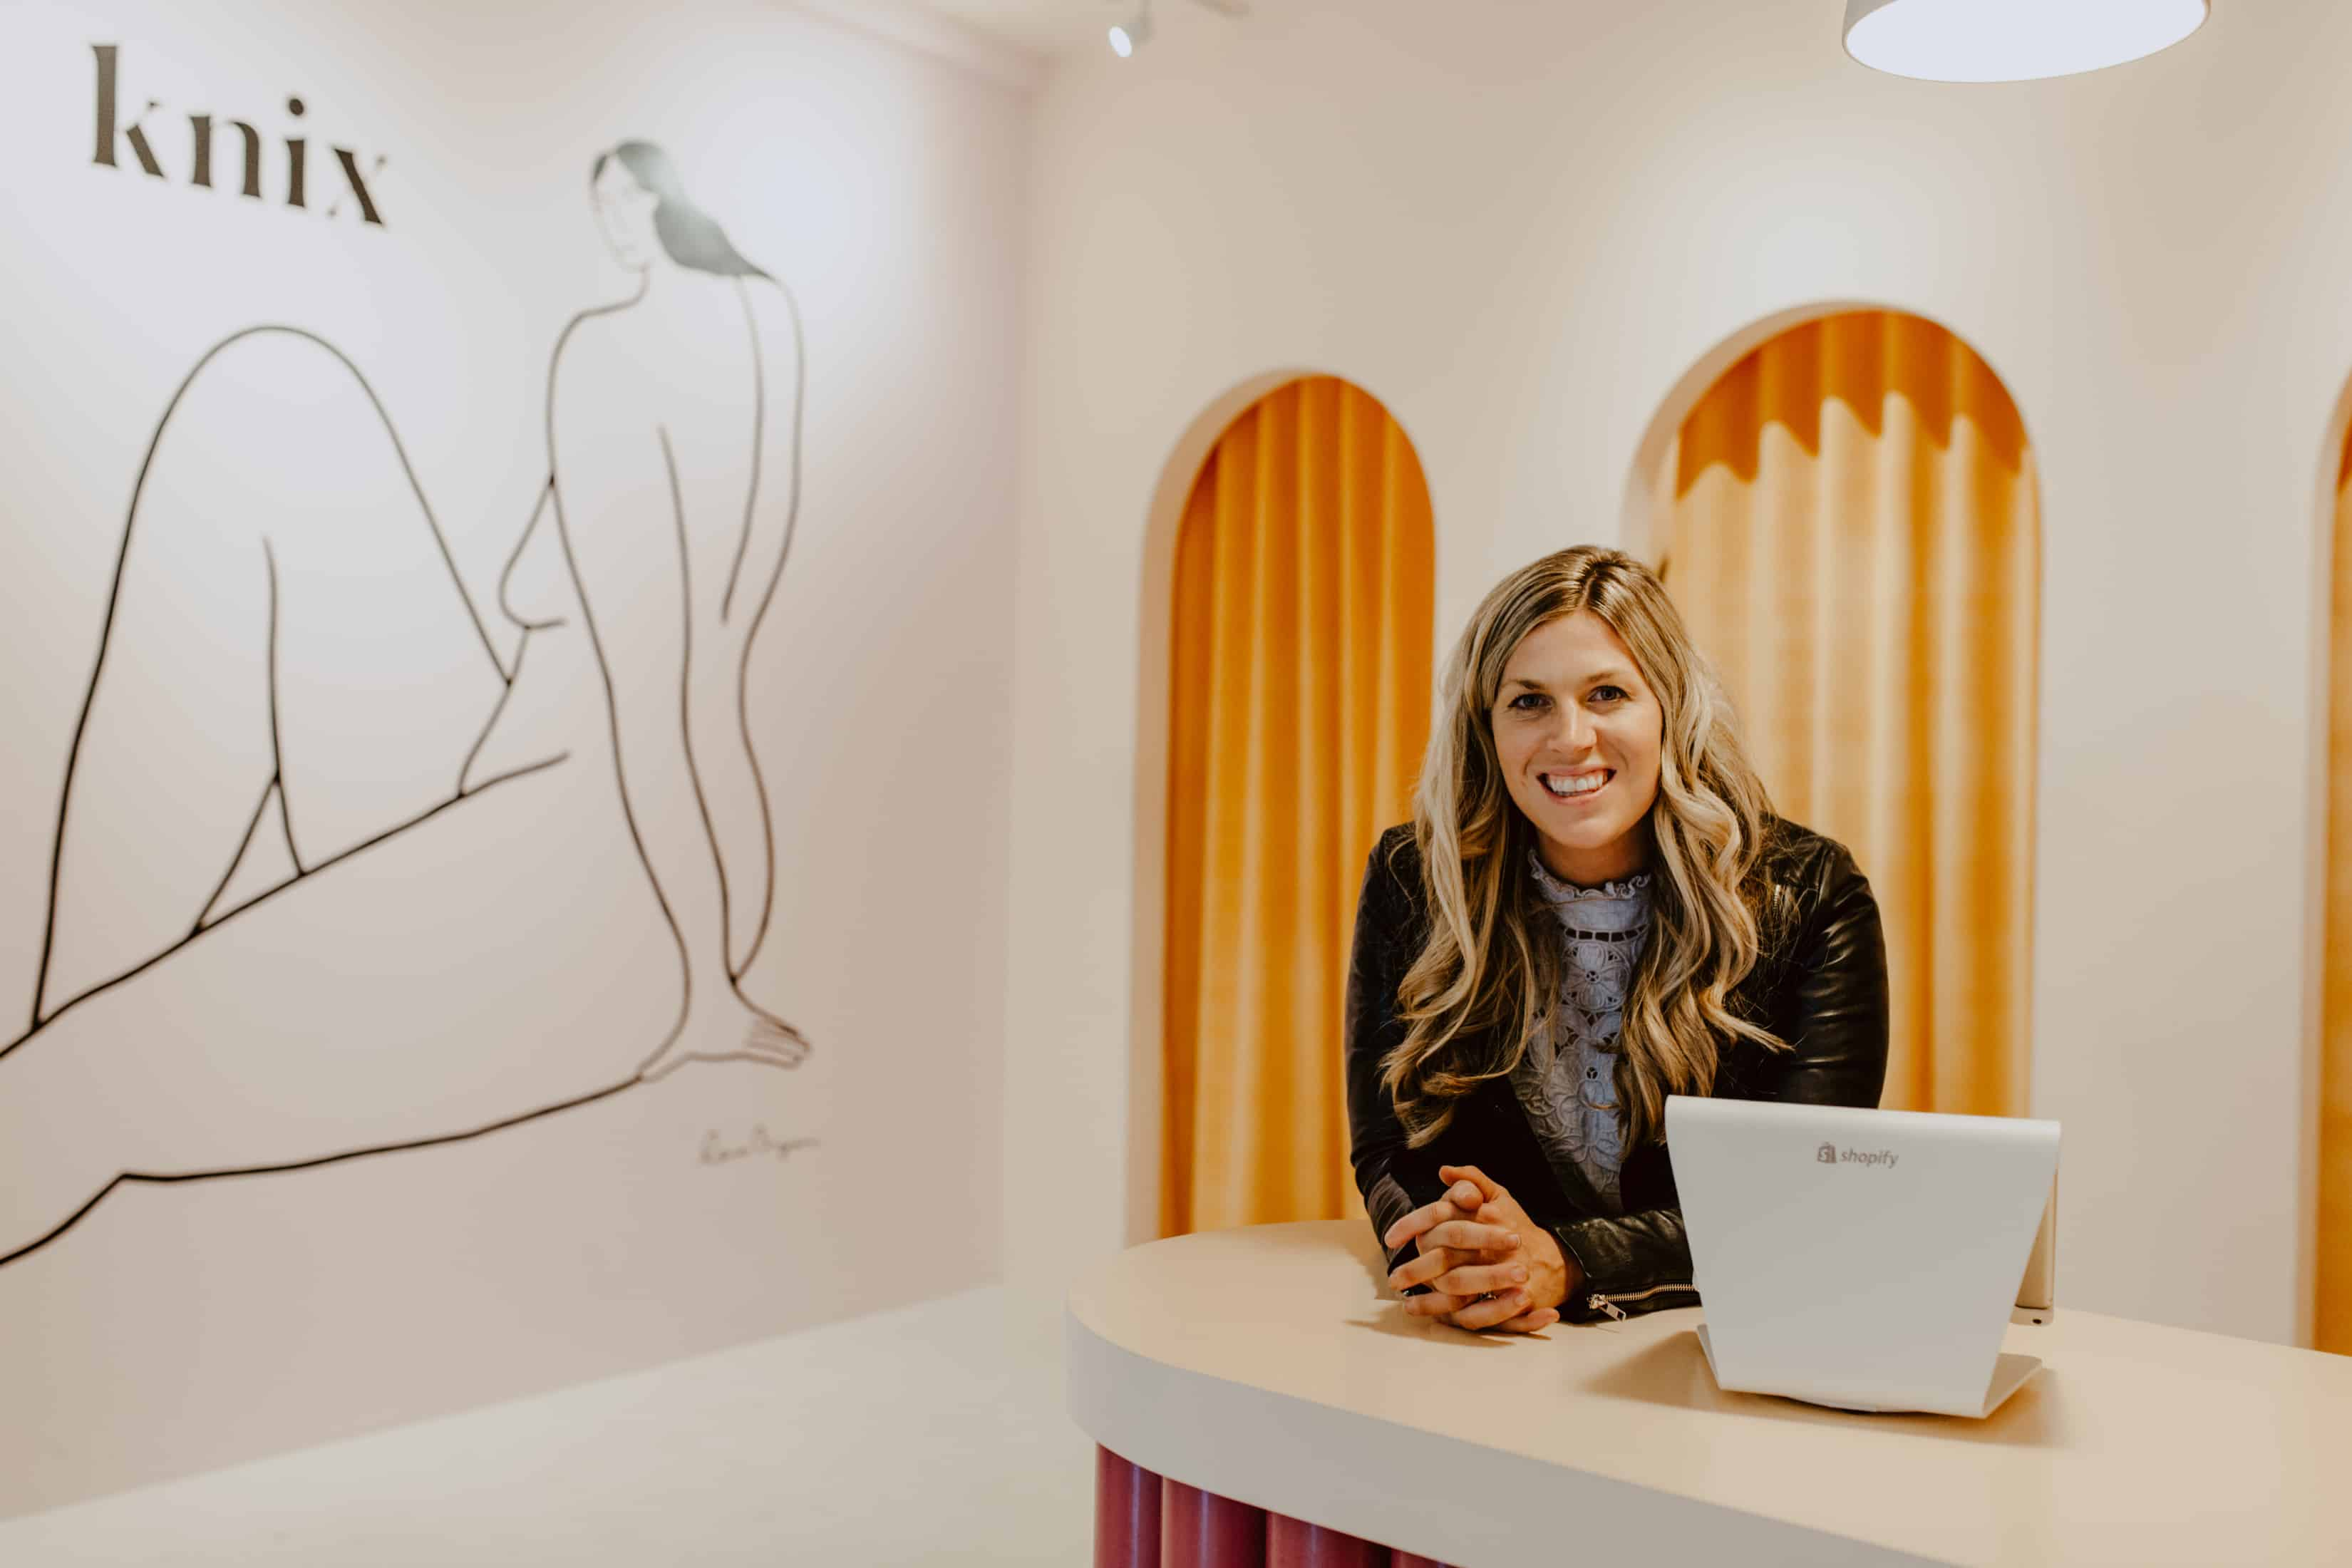 EcoLux☆Lifestyle: Knix Intimates Now Offers Offline Shopping in Kitsilano